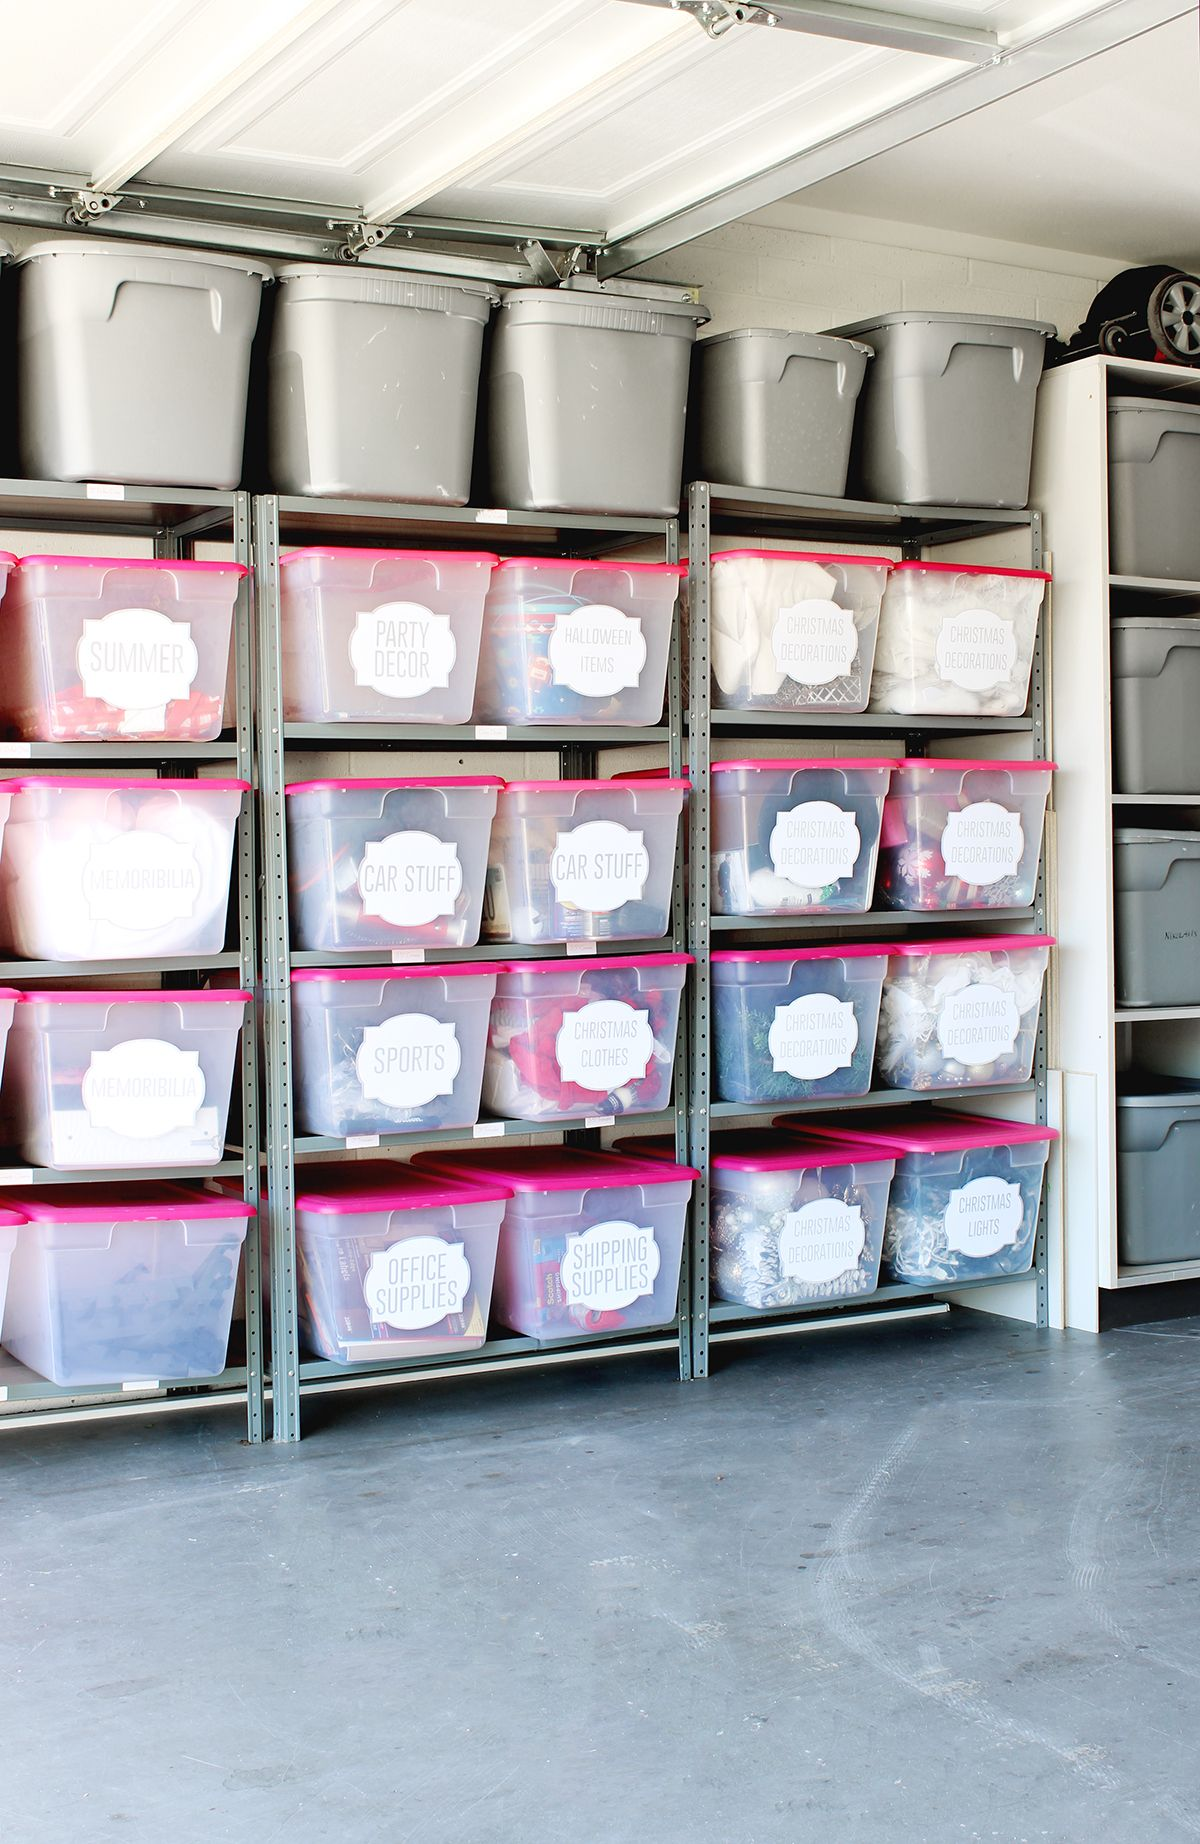 Merveilleux LOVE This Garage Organization! The Labels And Bins Are Amazing! Click For  Tutorial!